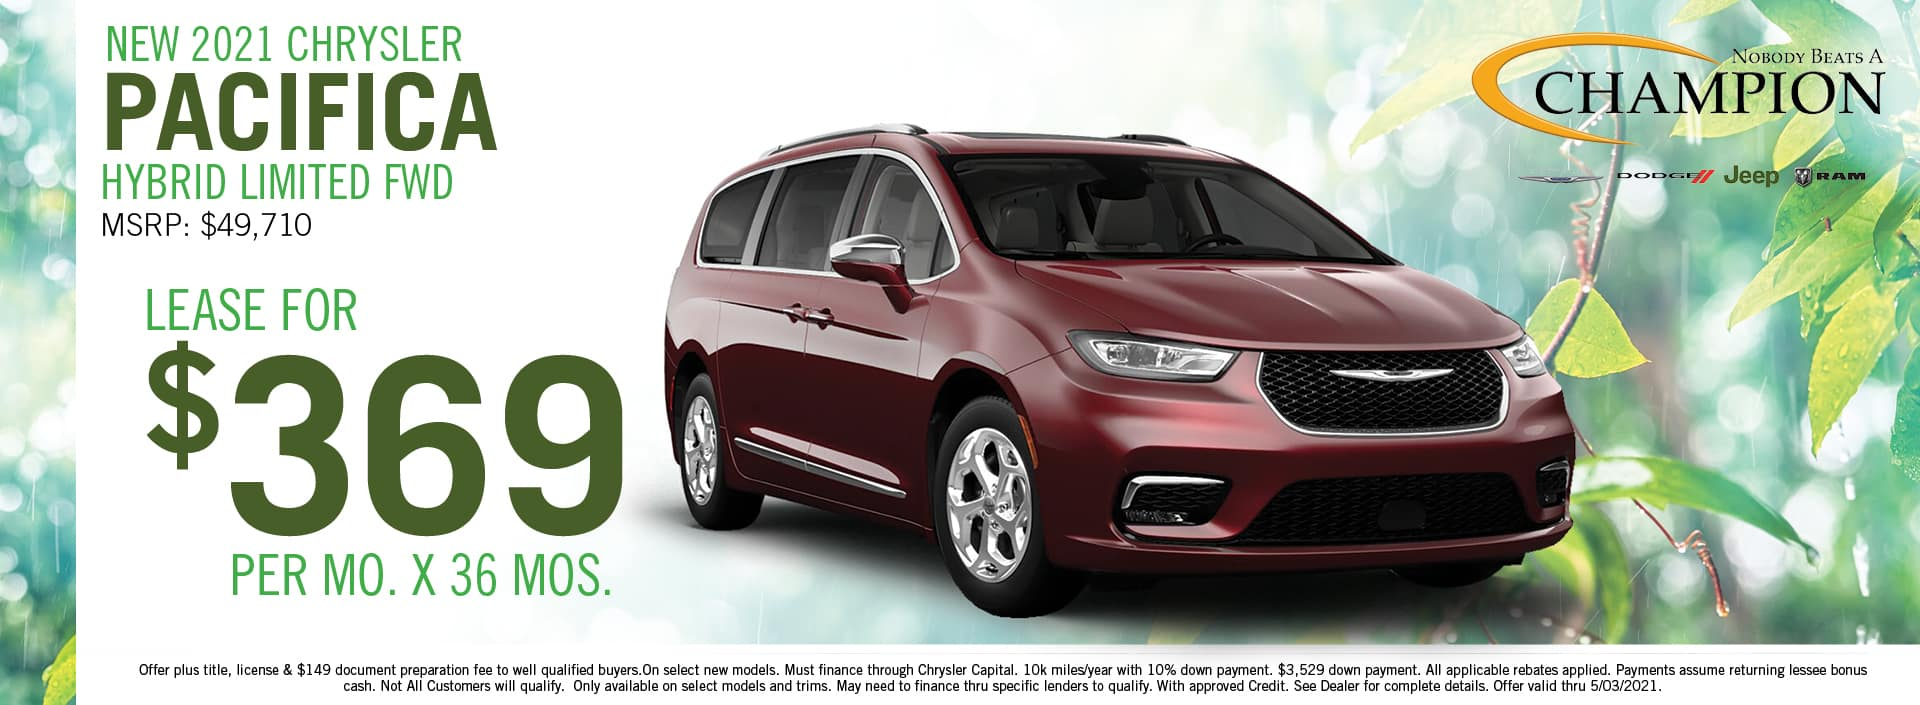 2021 Chrysler Pacifica Lease Deals - Champion CDJR